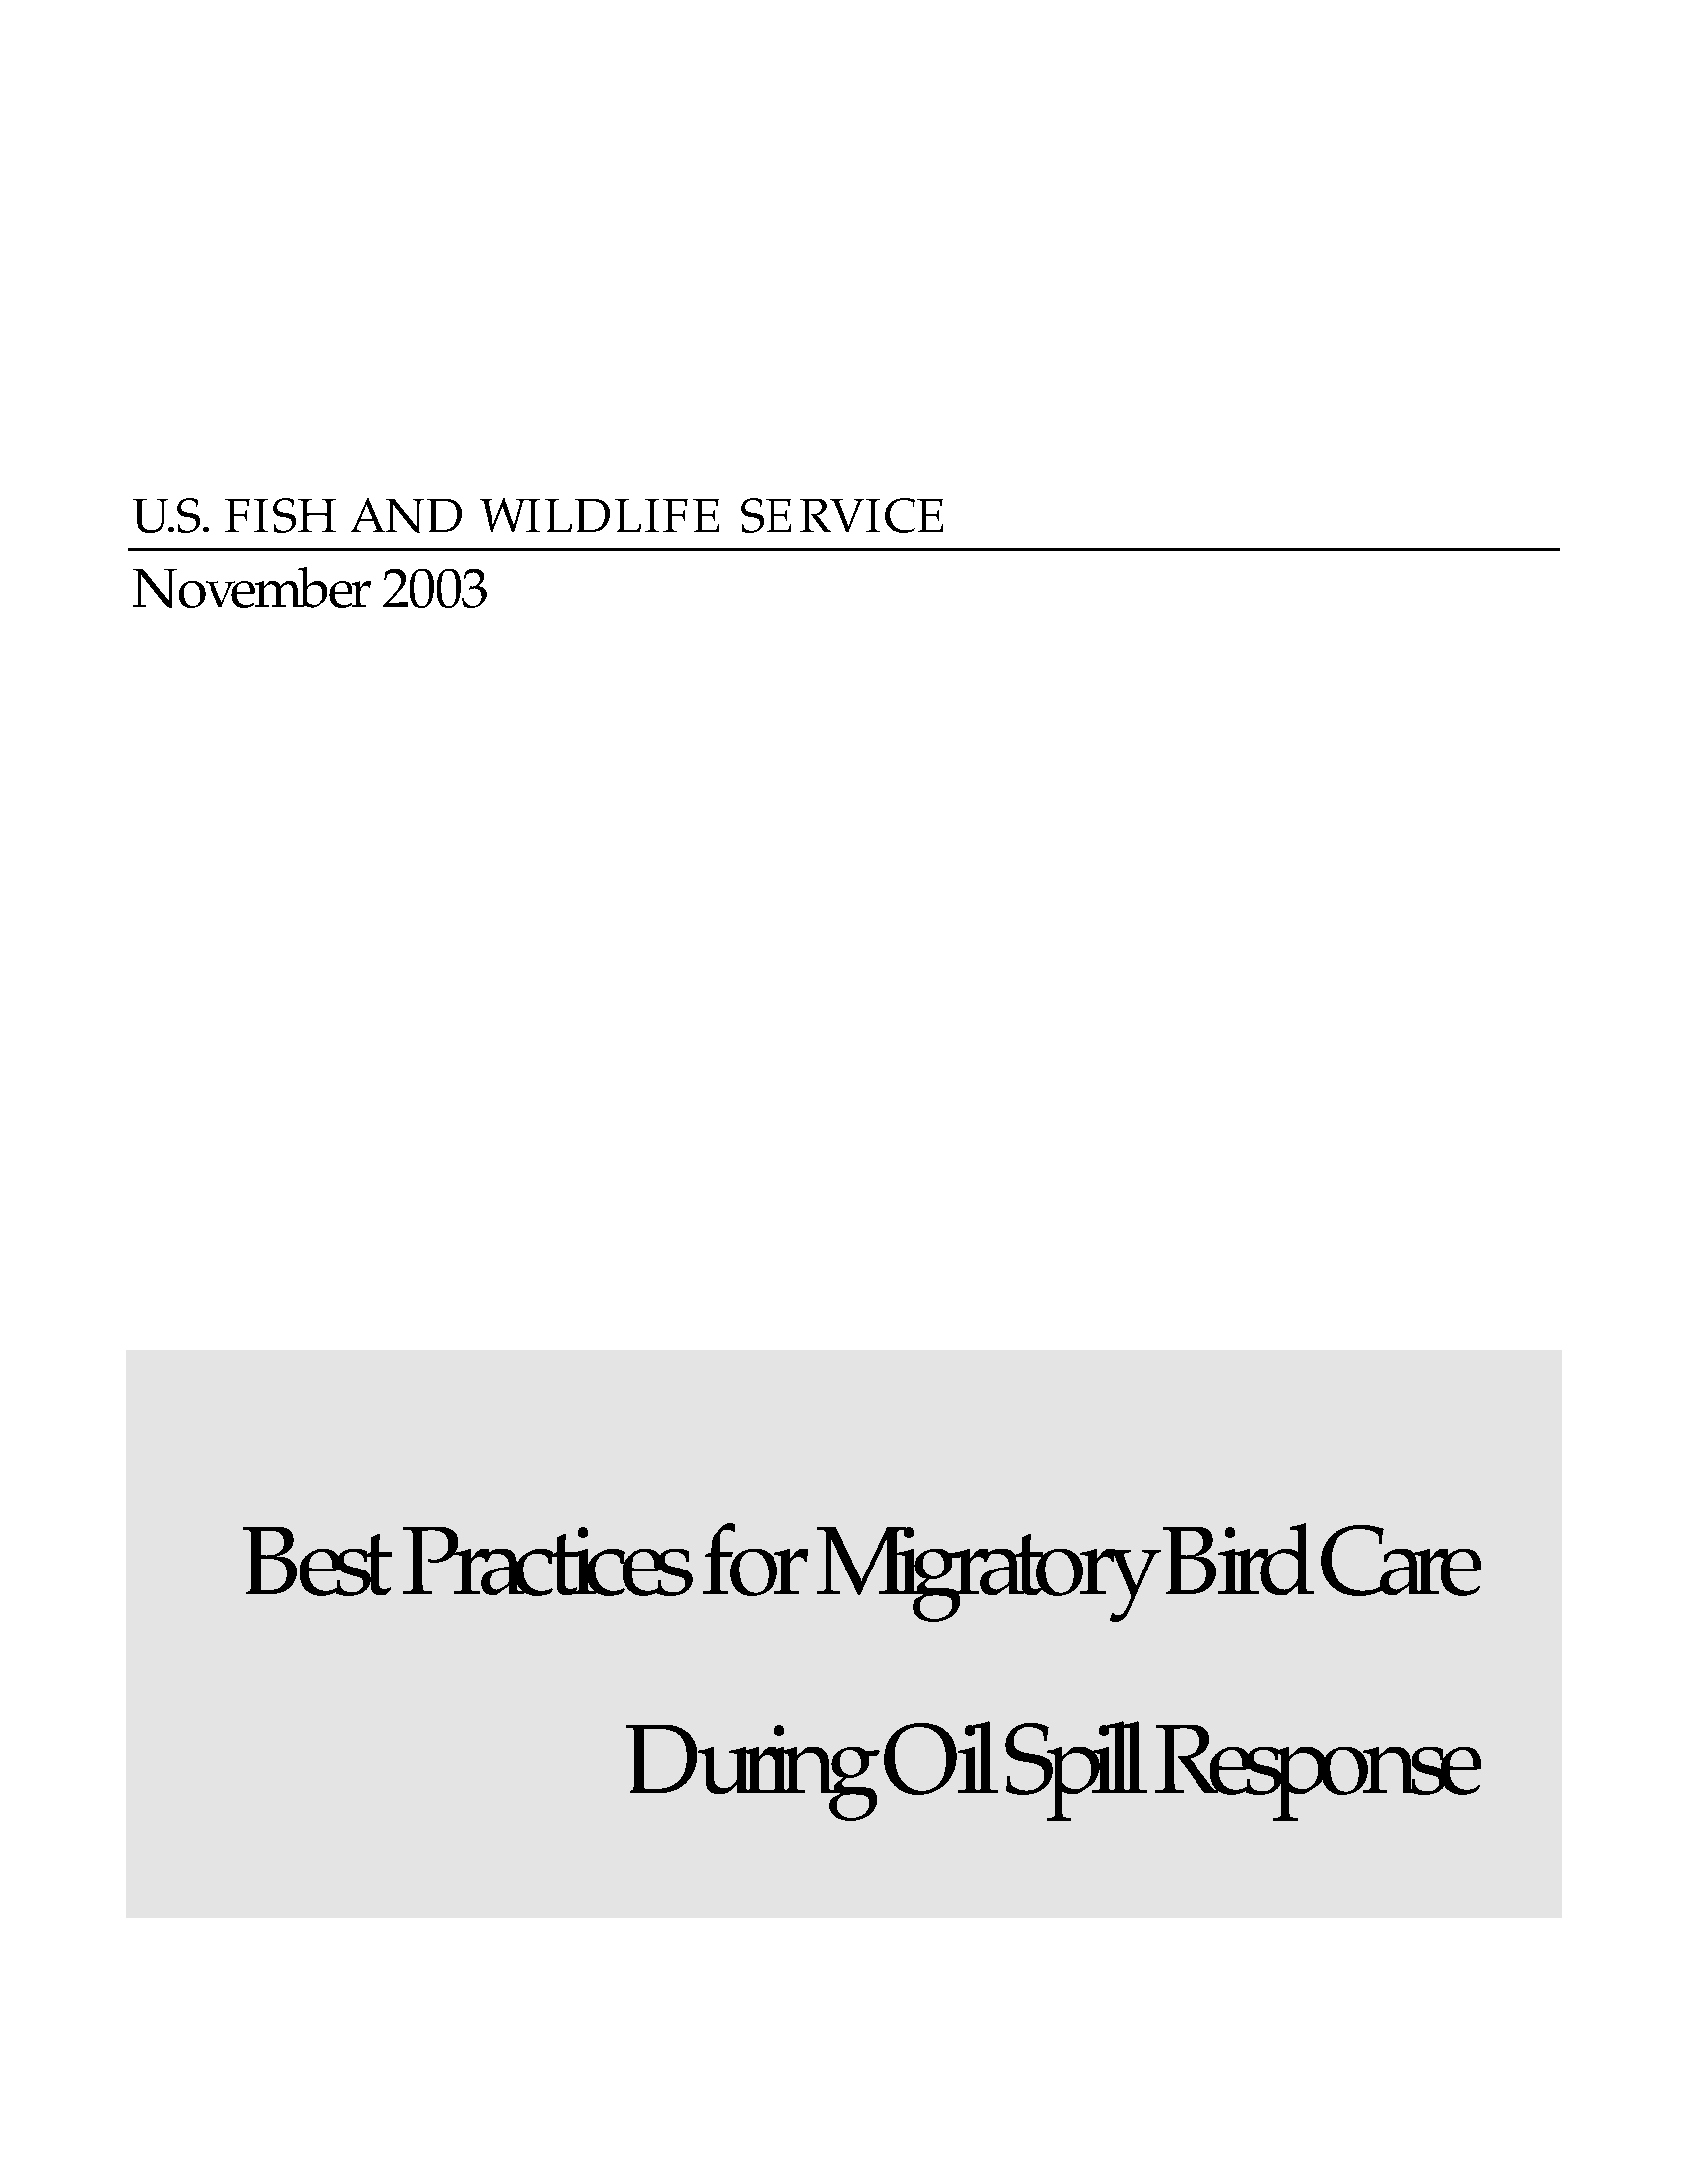 best practices for migratory bird care during oil spill